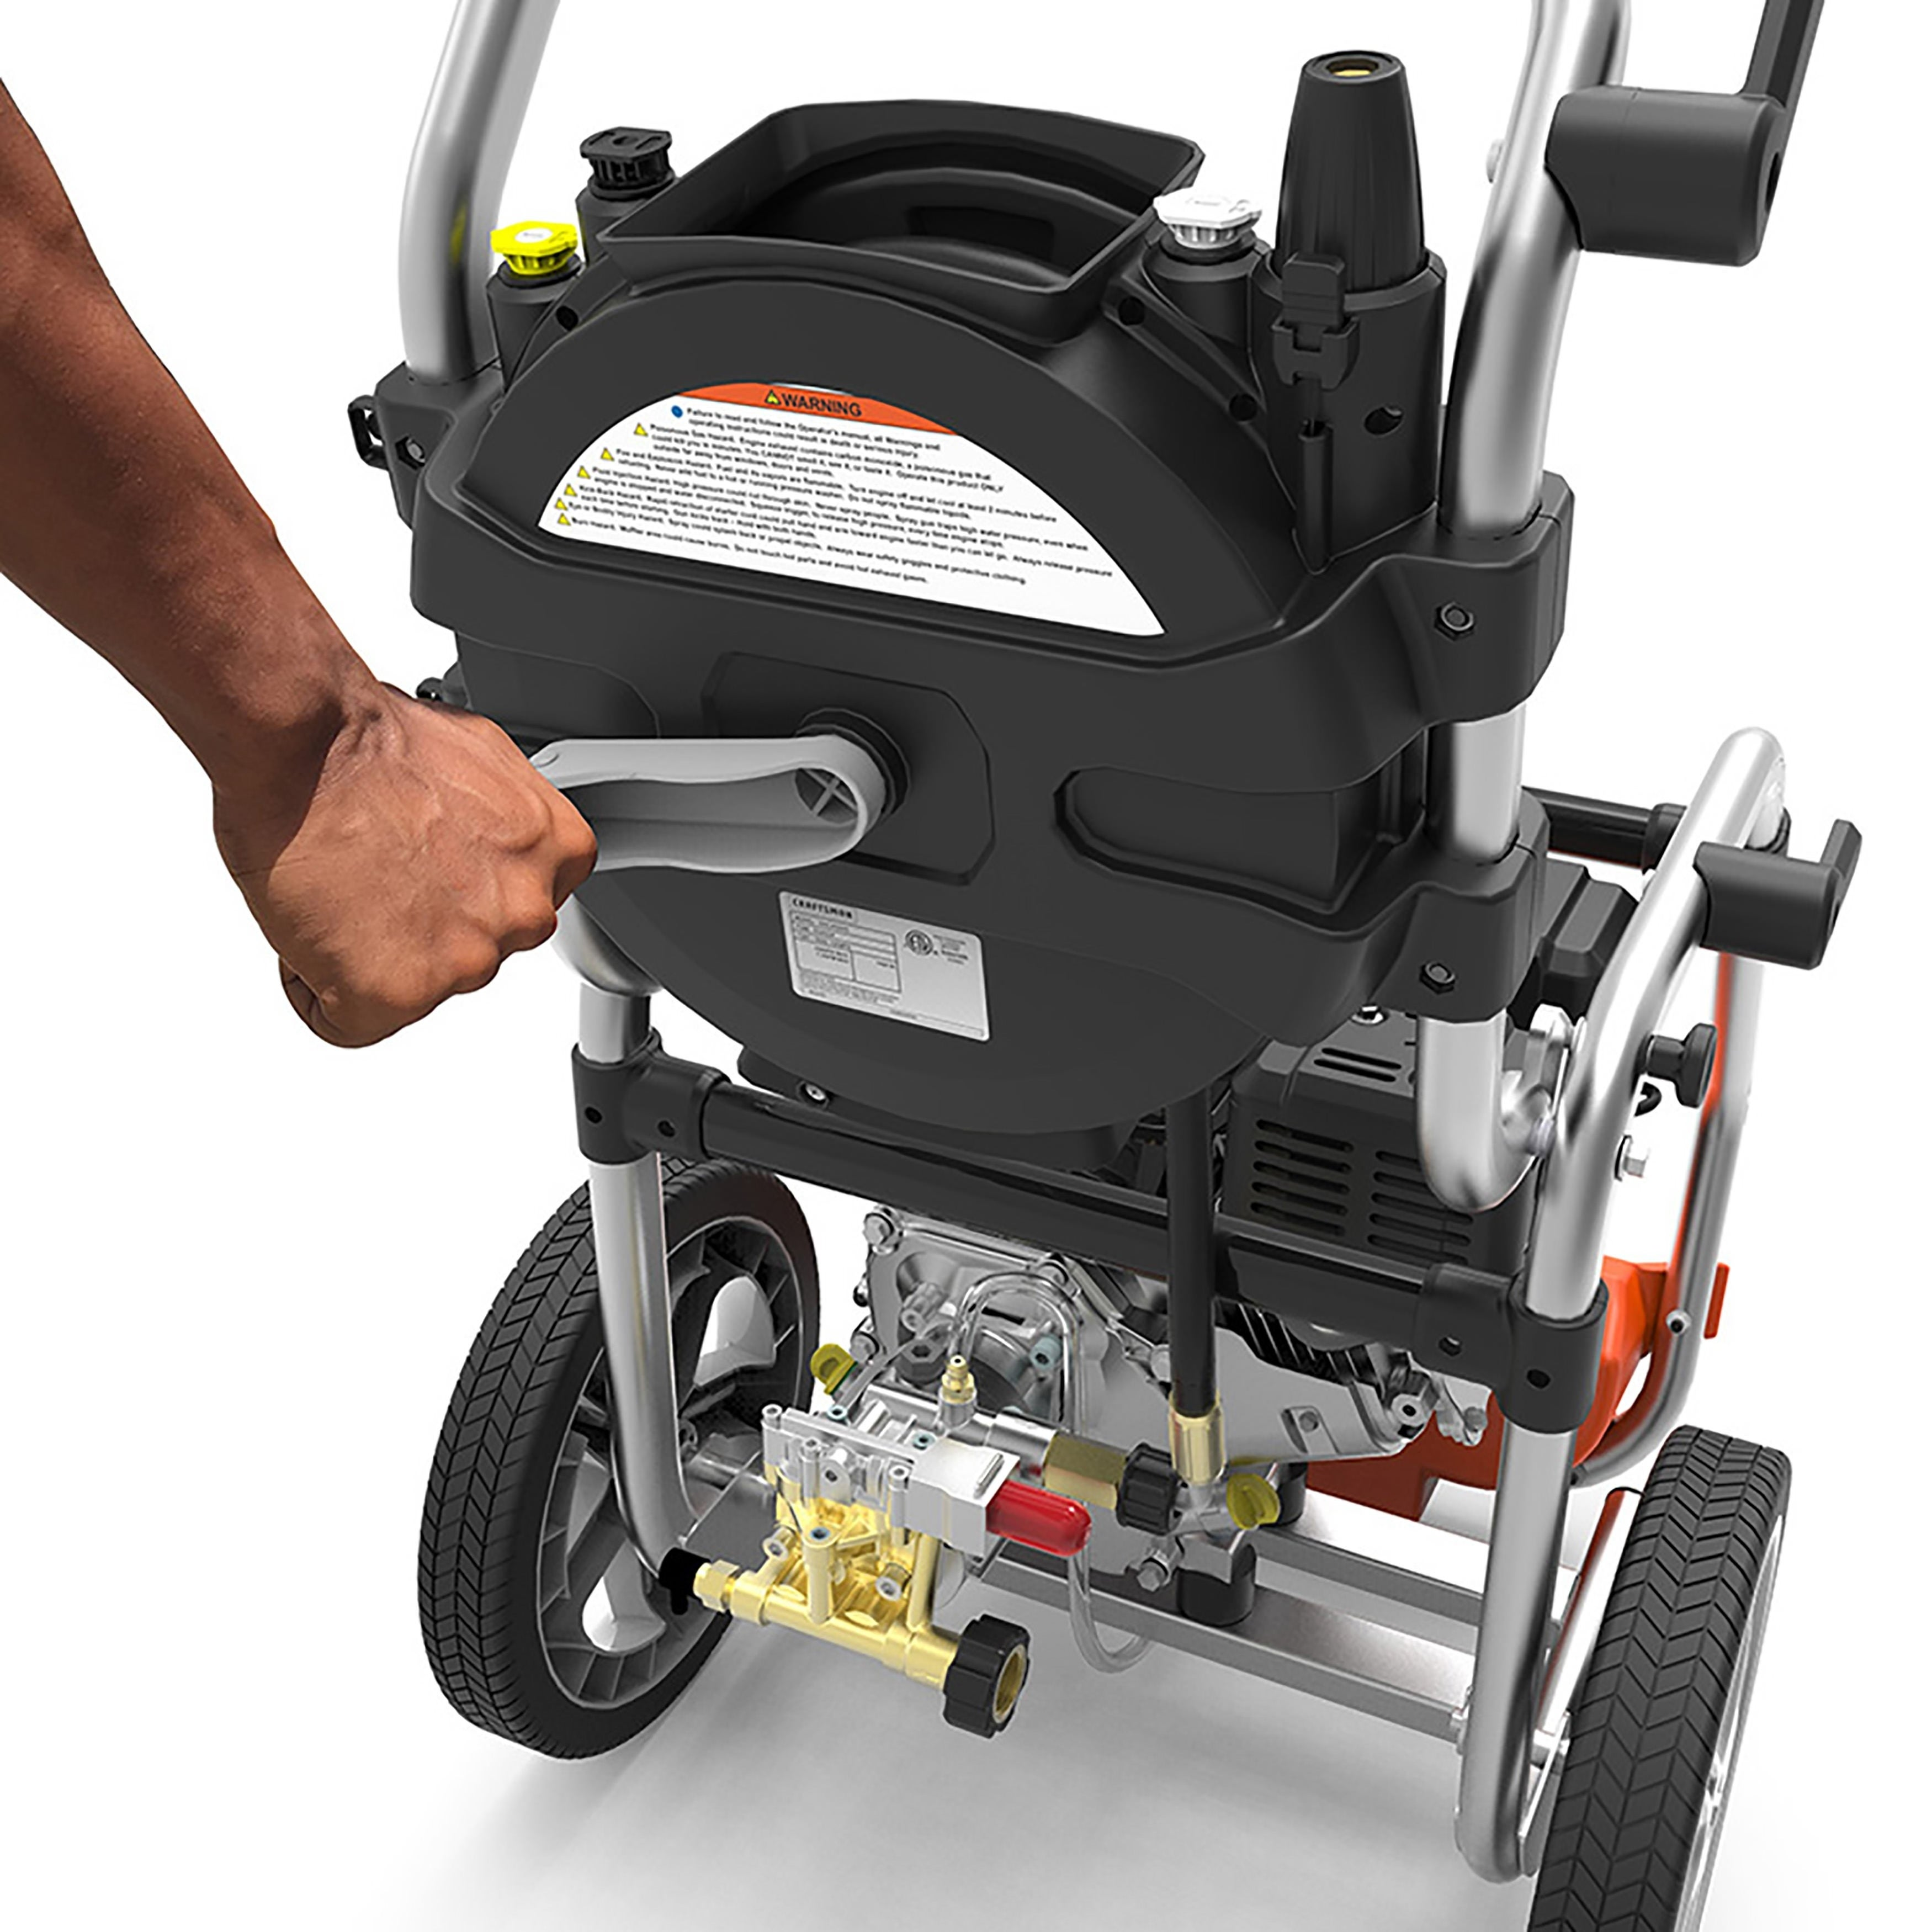 Shop Yard Force 3200 PSI 2.5 GPM Gas Power Pressure Washer with Hose Reel - On Sale - Free Shipping Today - Overstock.com - 20091312  sc 1 st  Overstock.com & Shop Yard Force 3200 PSI 2.5 GPM Gas Power Pressure Washer with Hose ...